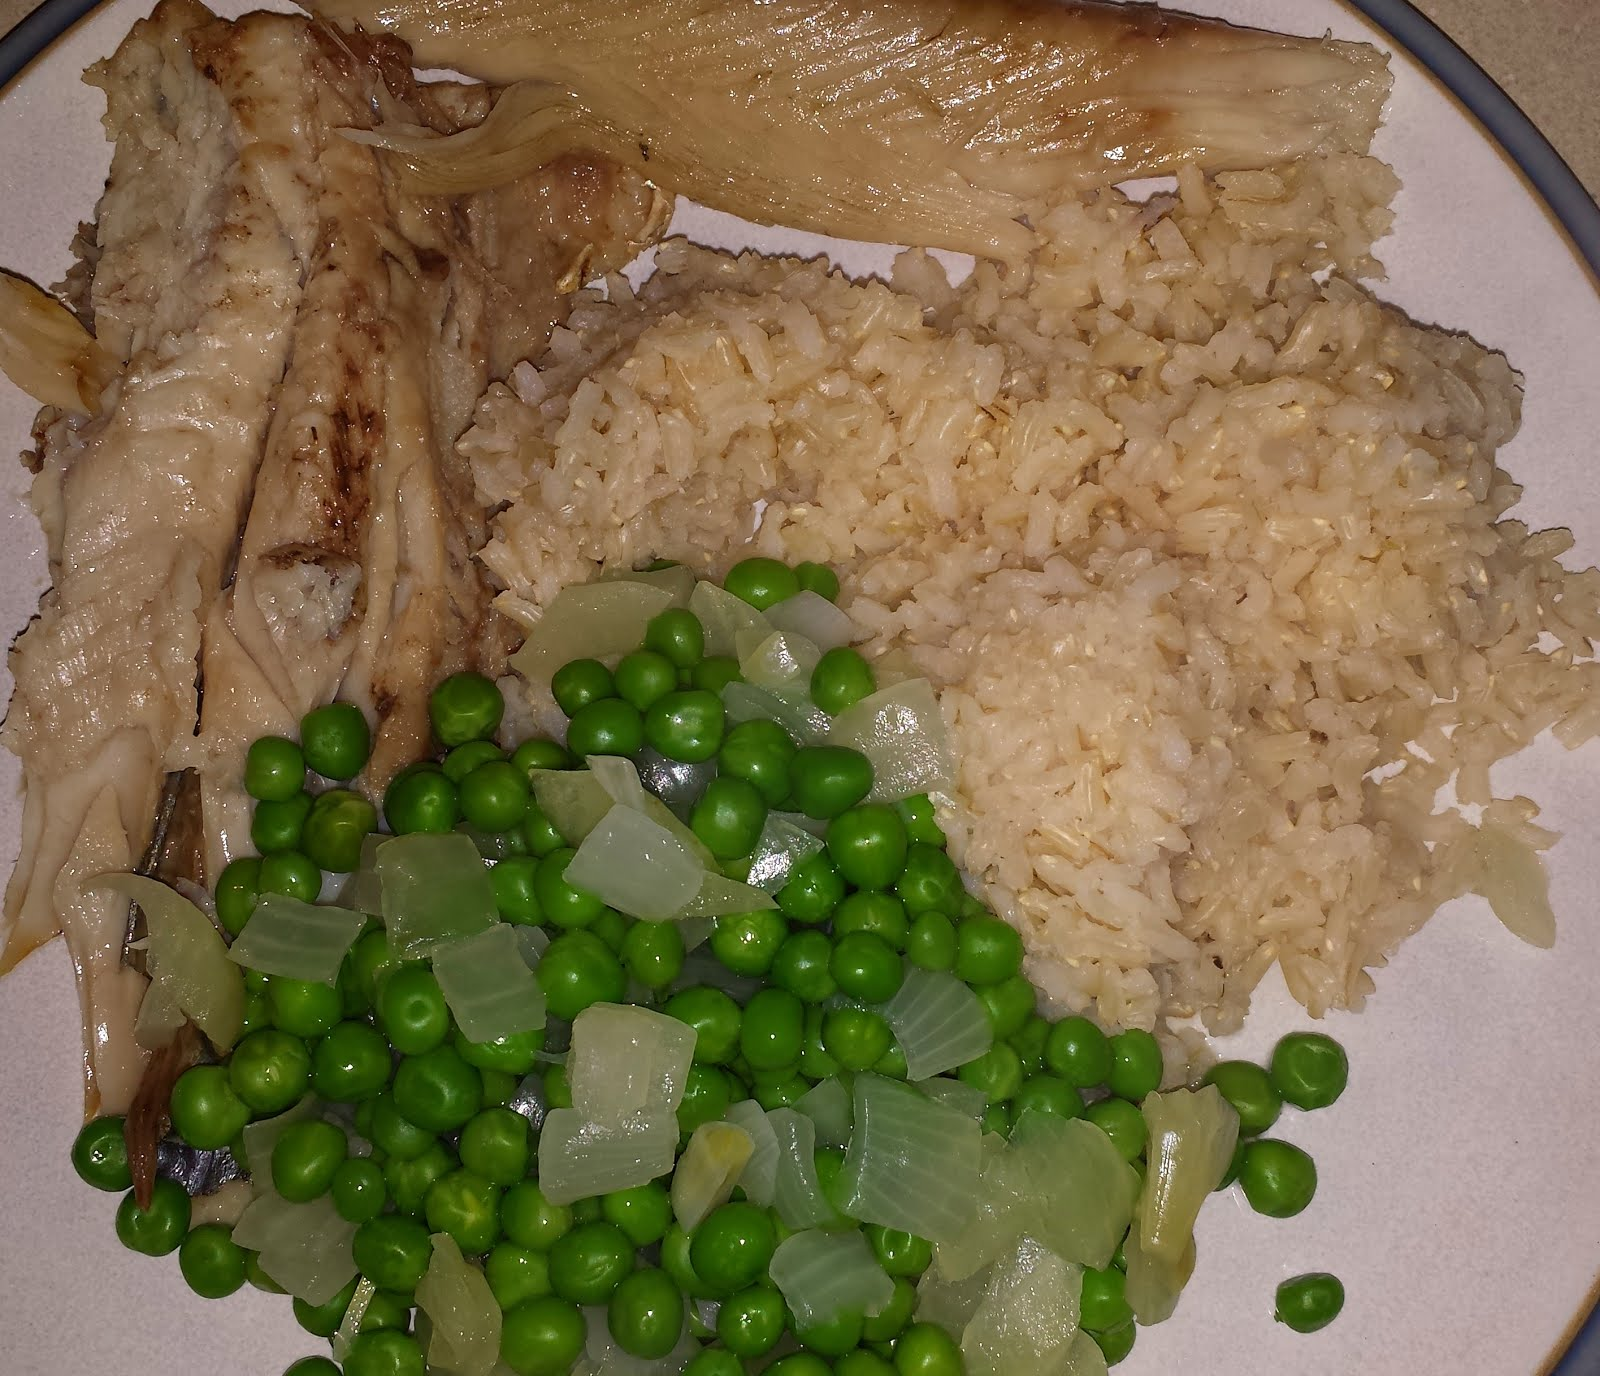 Mike's Meals: Baked Spanish Mackerel